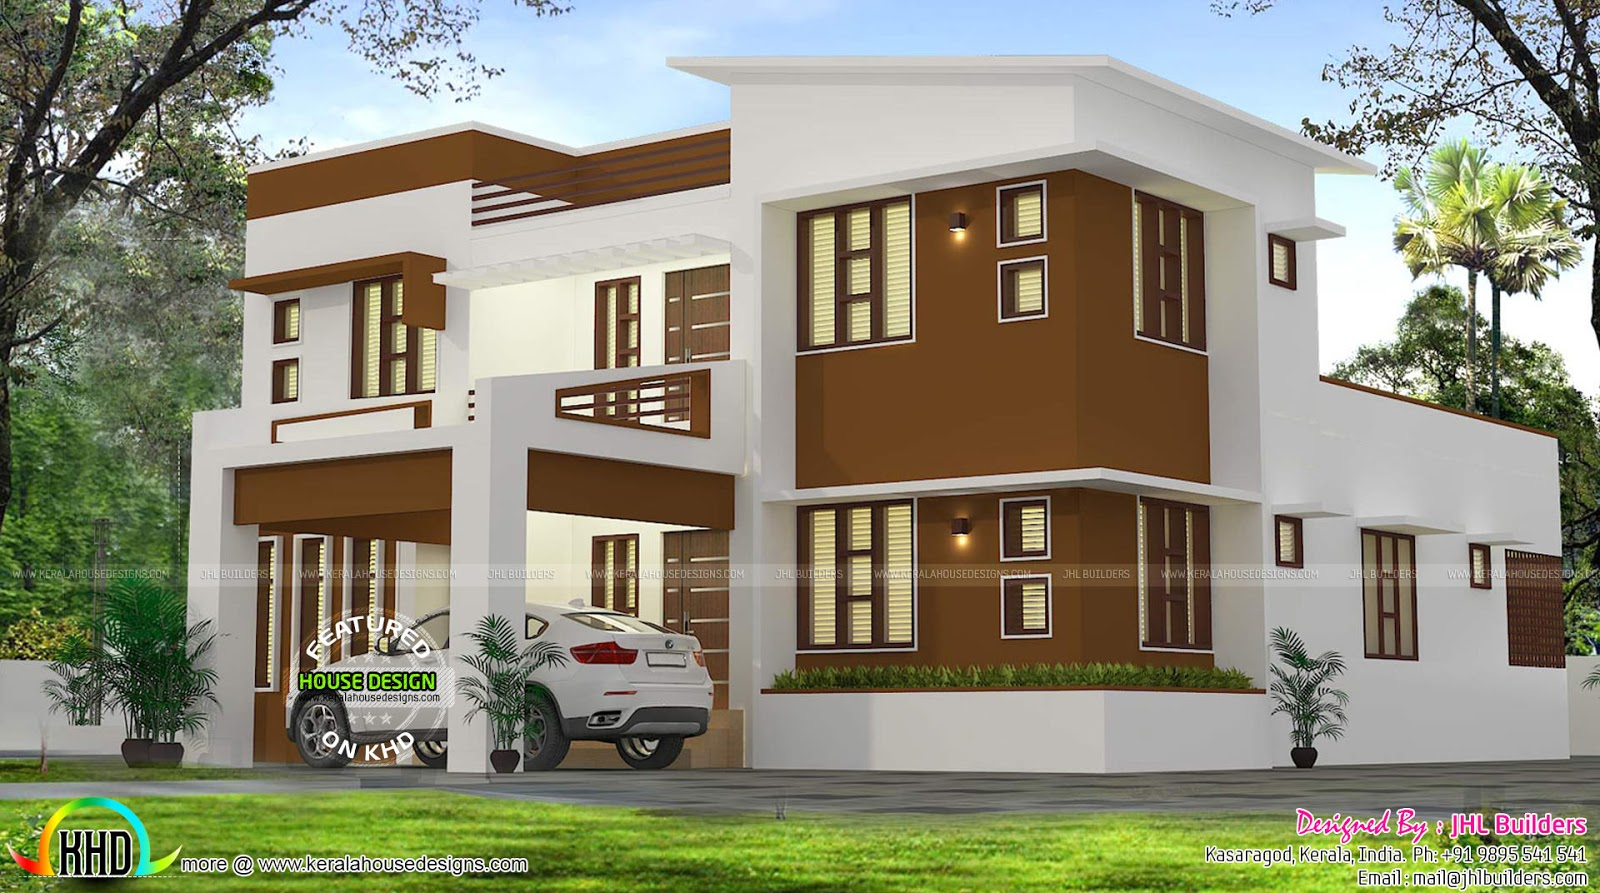 Interior designs and elevation of modern home kerala for Interior design house elevation